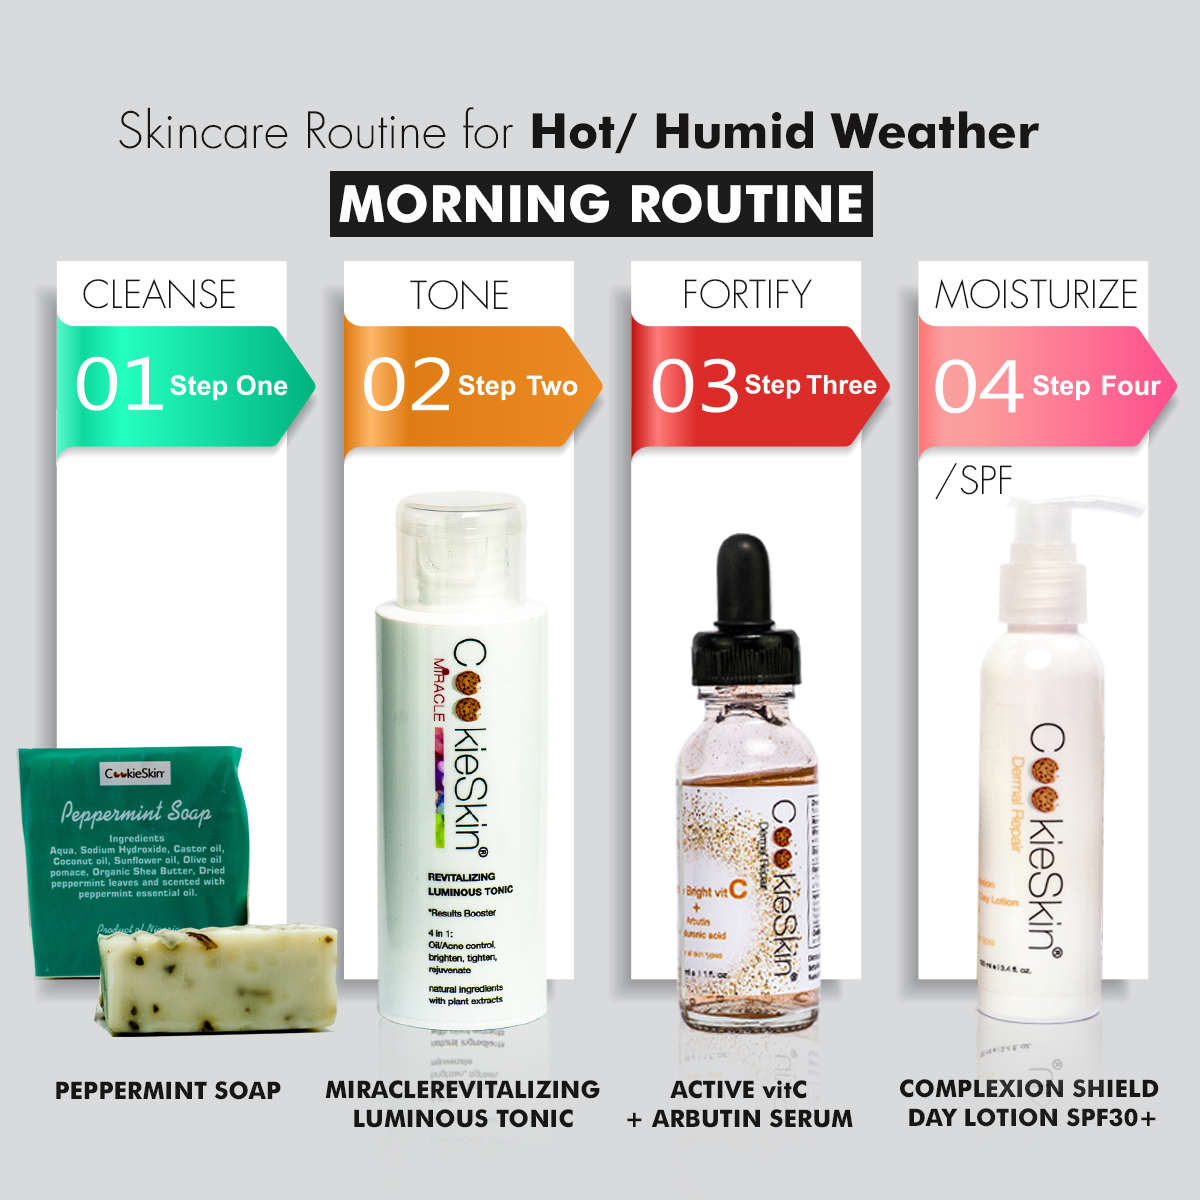 Morning Routine For Humid Weather